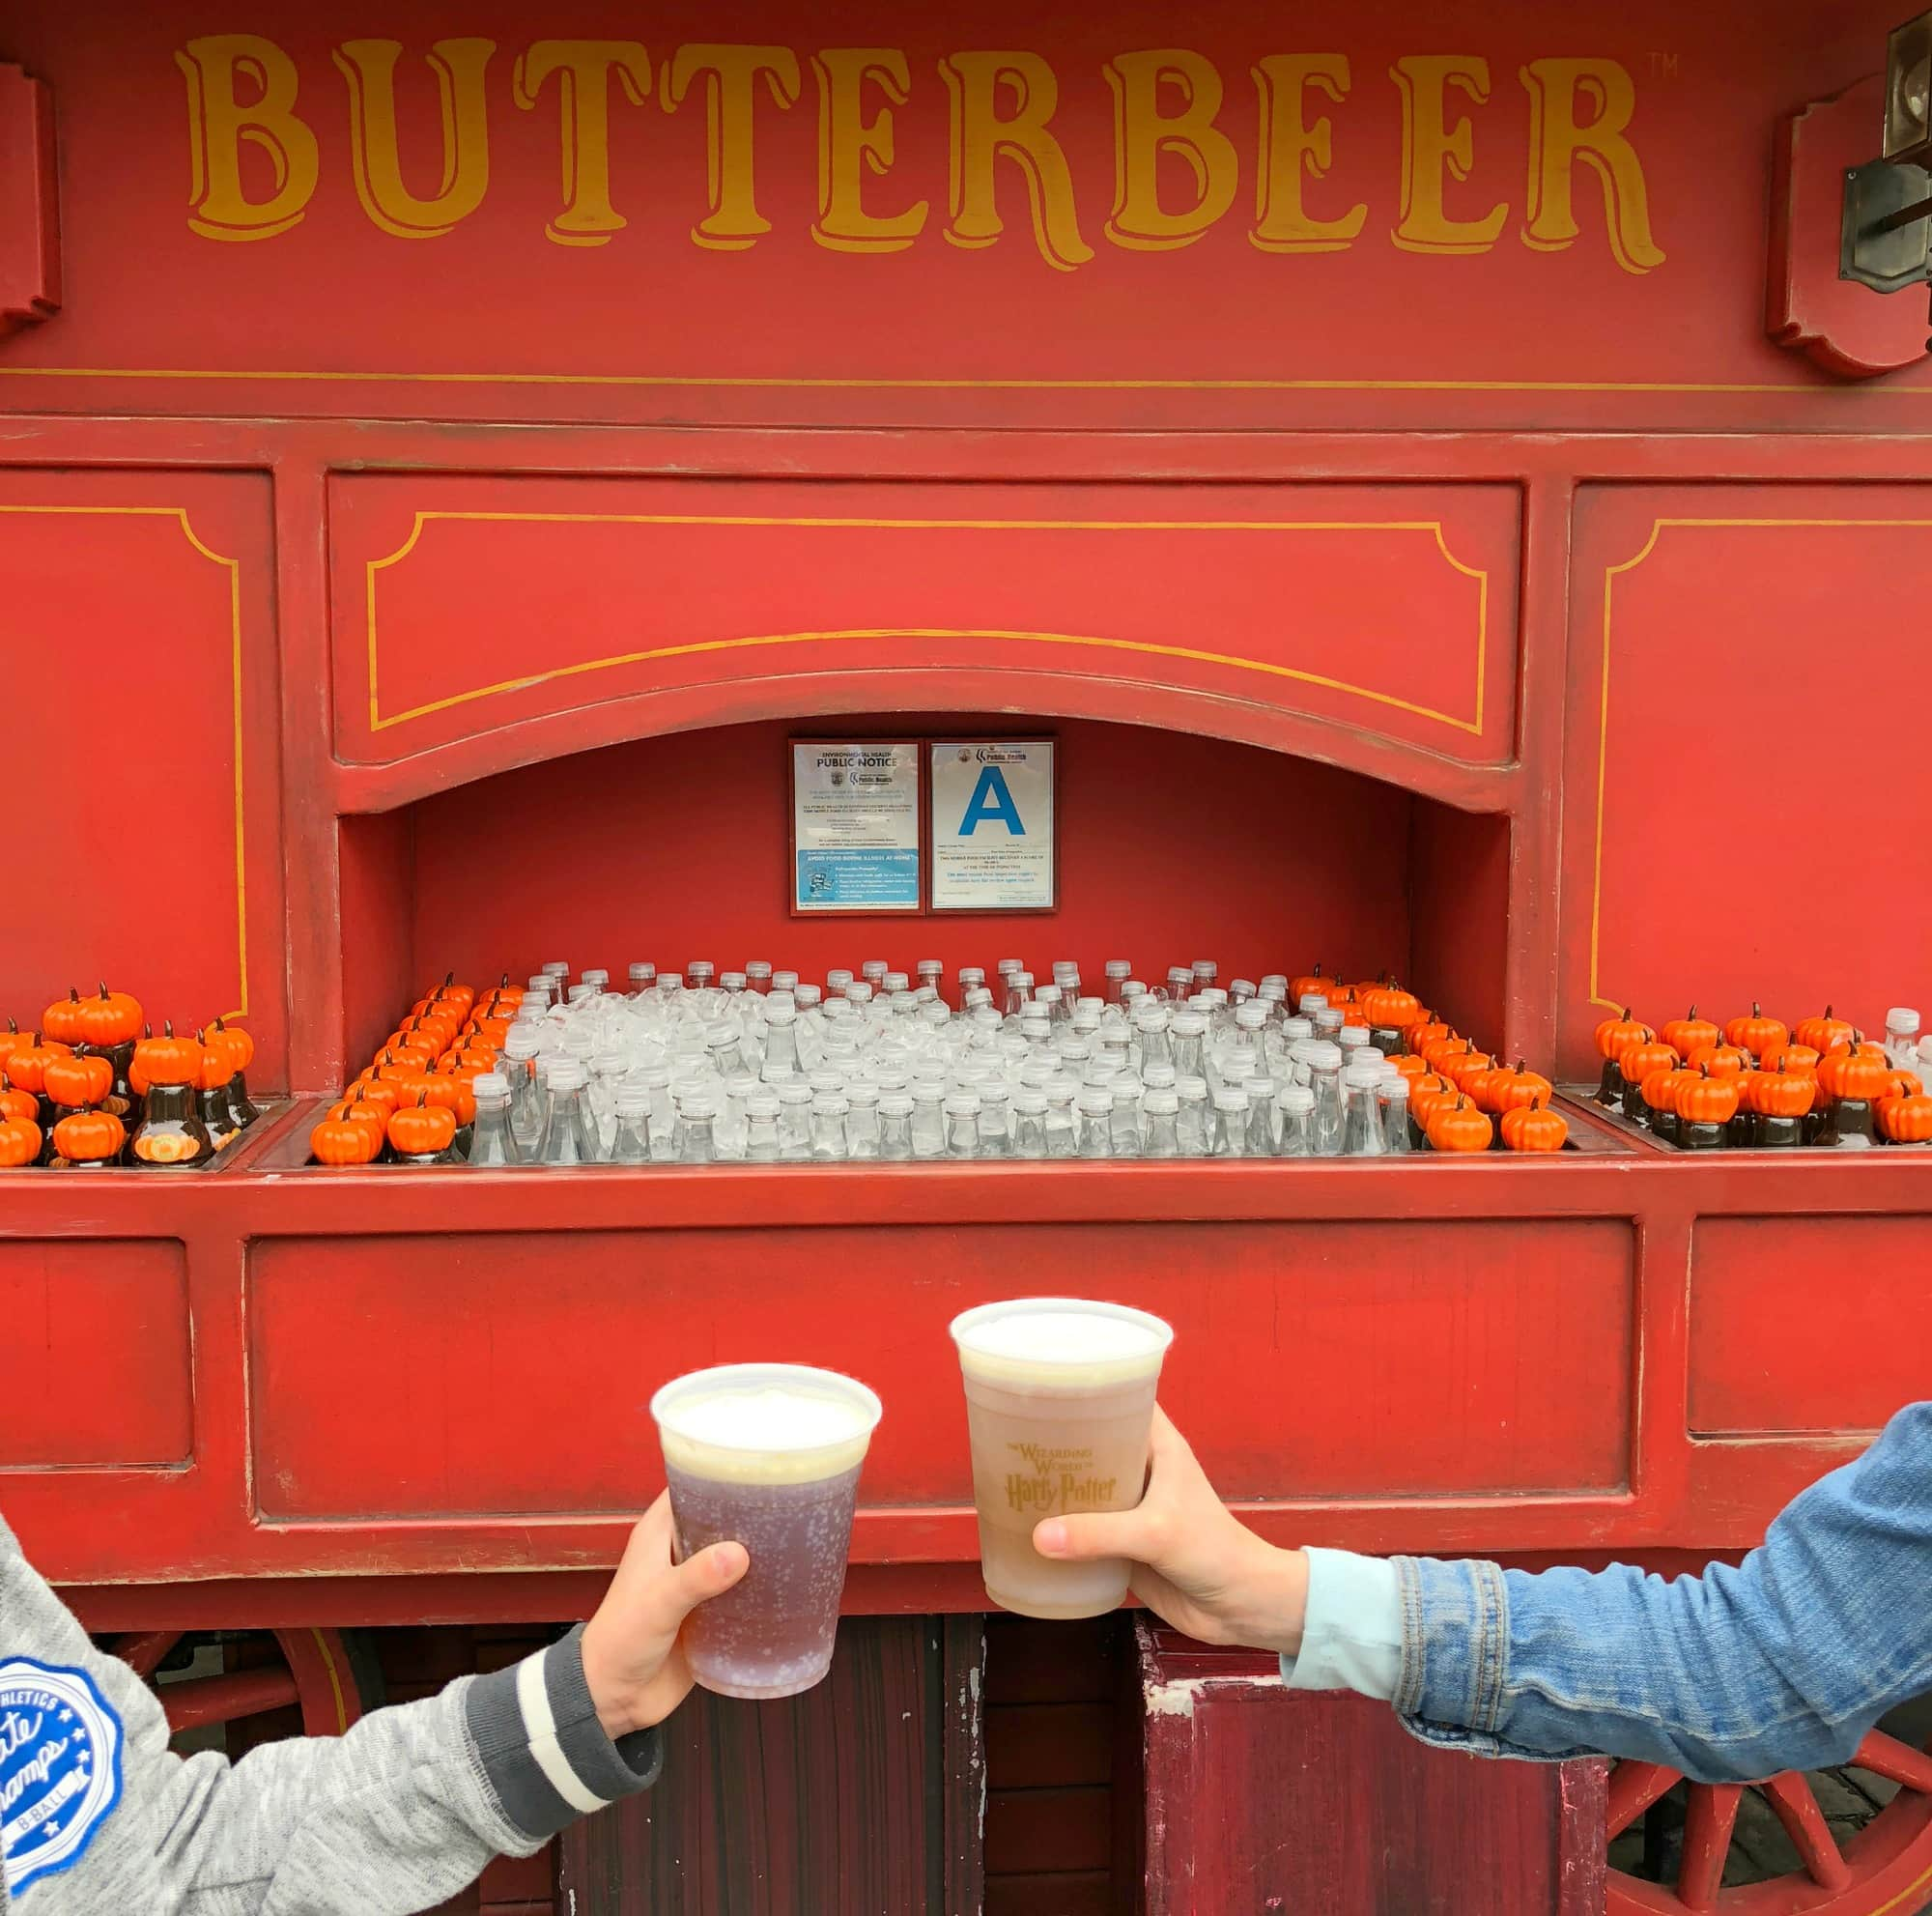 Buy Butterbeer cold and bubbly or frozen from carts in The Wizarding World of Harry Potter